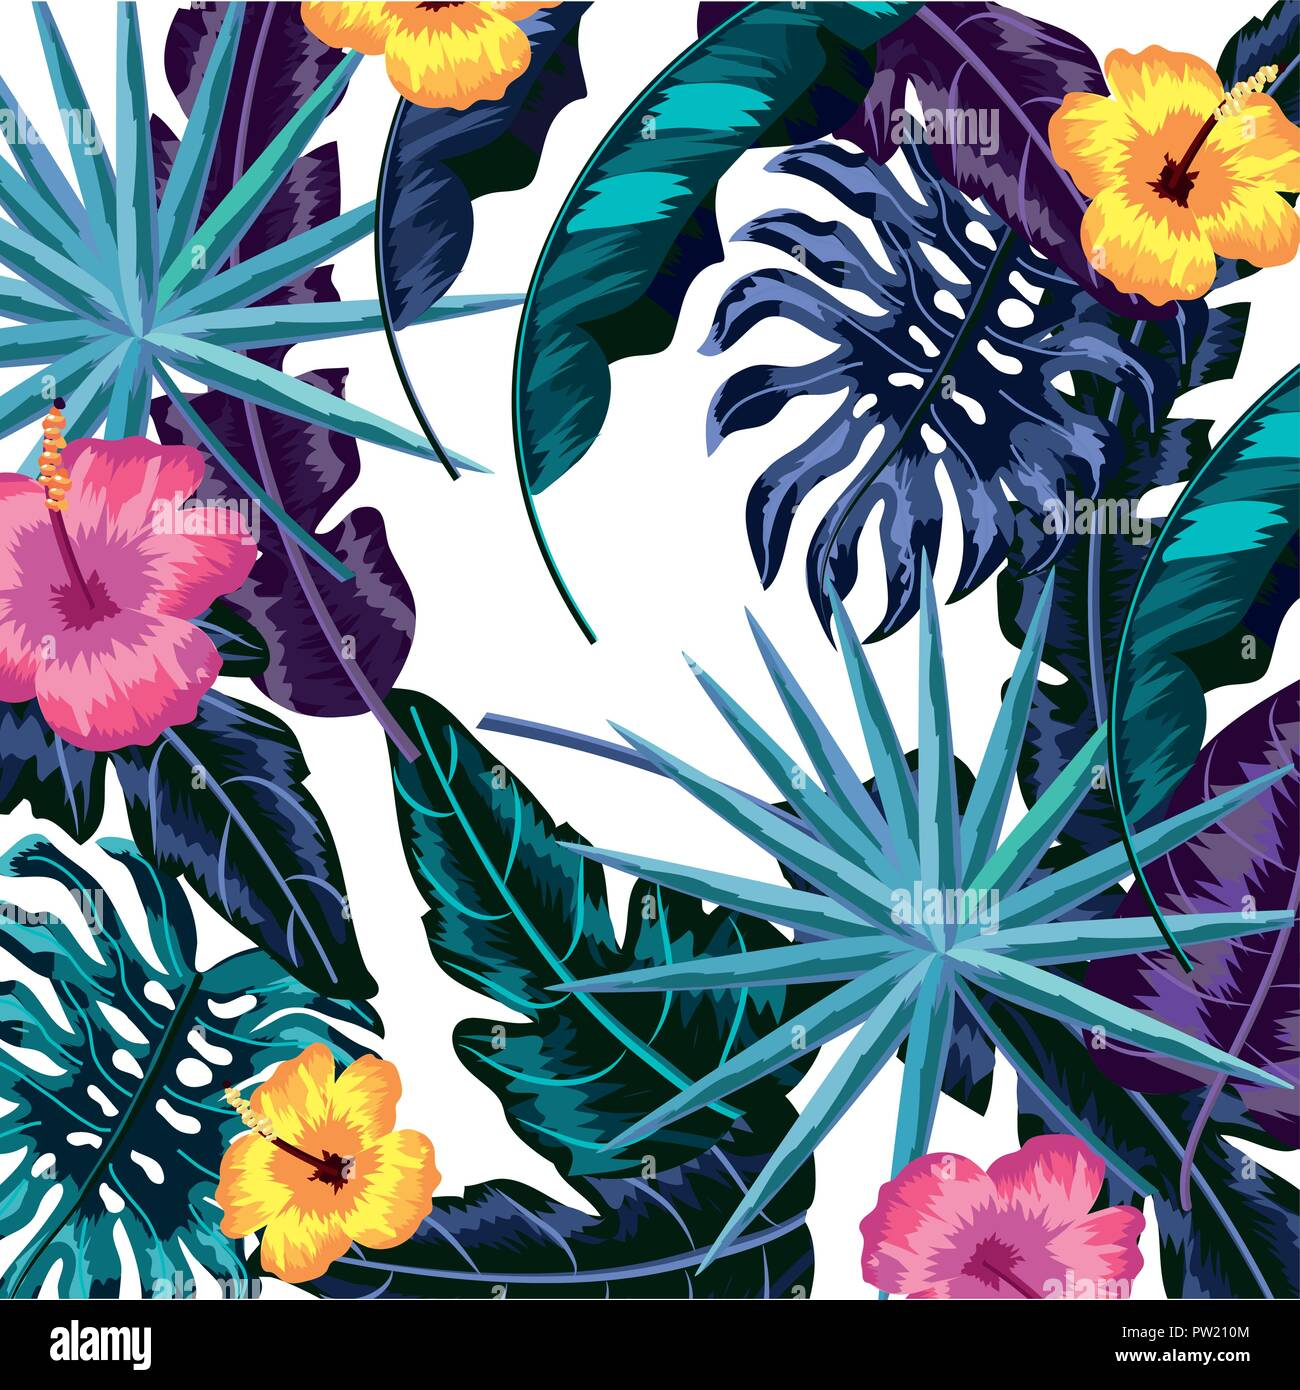 Tropical Flowers Background Stock Vector Art Illustration